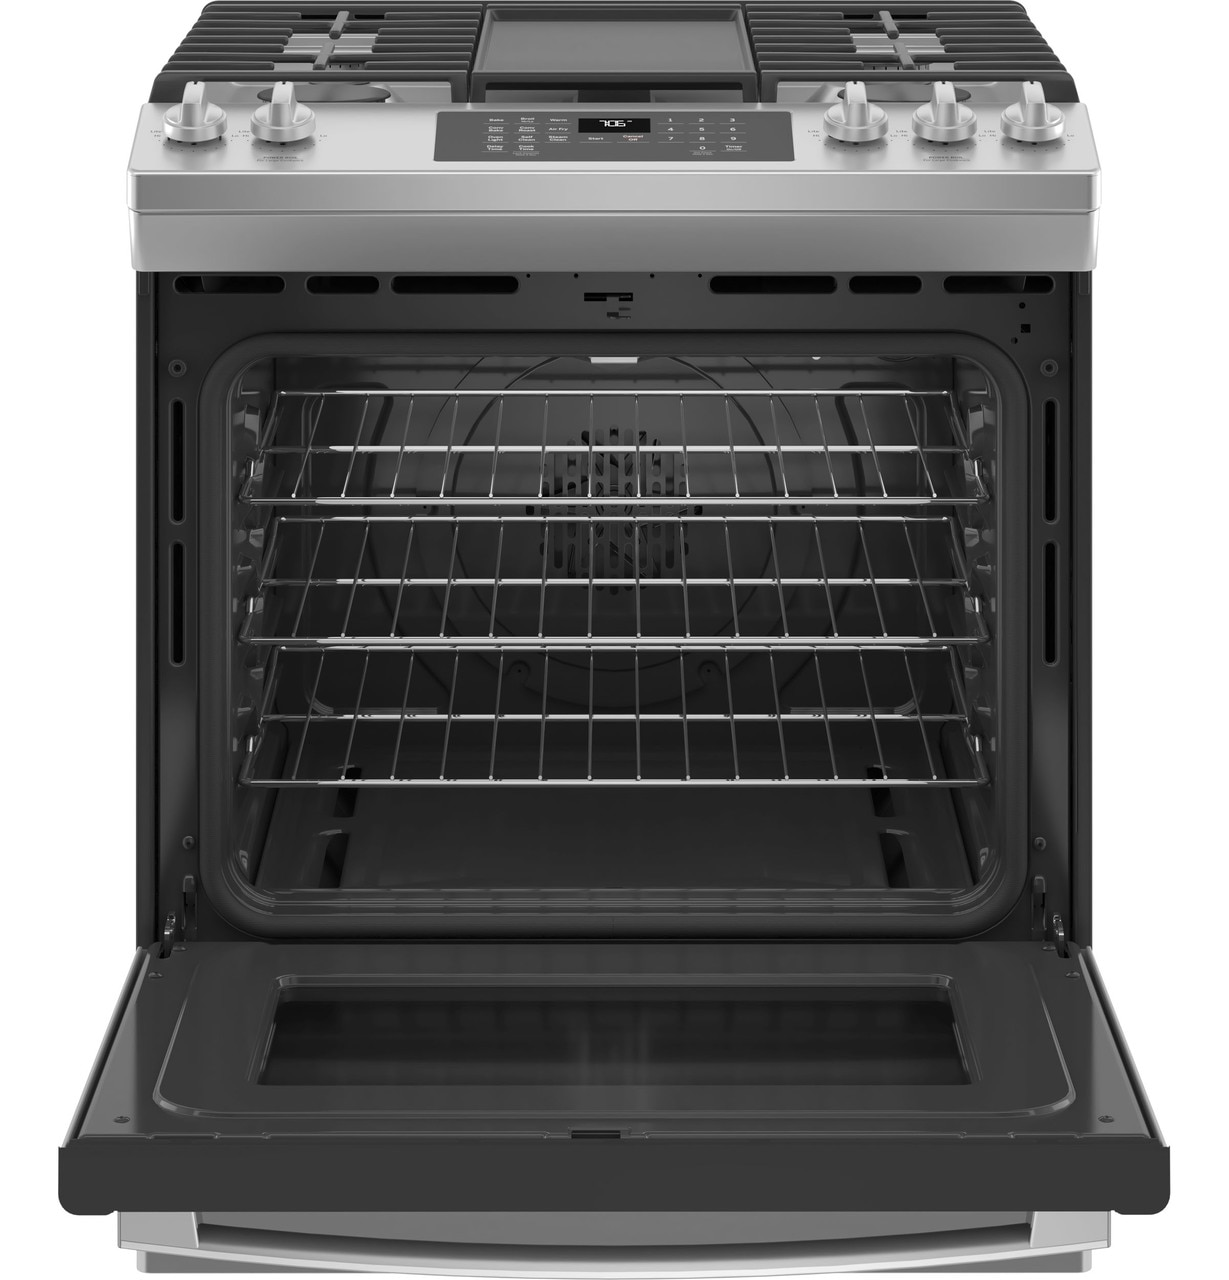 18,000 BTU Power Boil Burner ADA Compliant 5.3 Cu and Star-K Certified: Stainless Steel Convection Oven GE JGS760SPSS 30 Inch Slide-In Gas Range with 5 Sealed Burners Ft No Preheat Air Fry